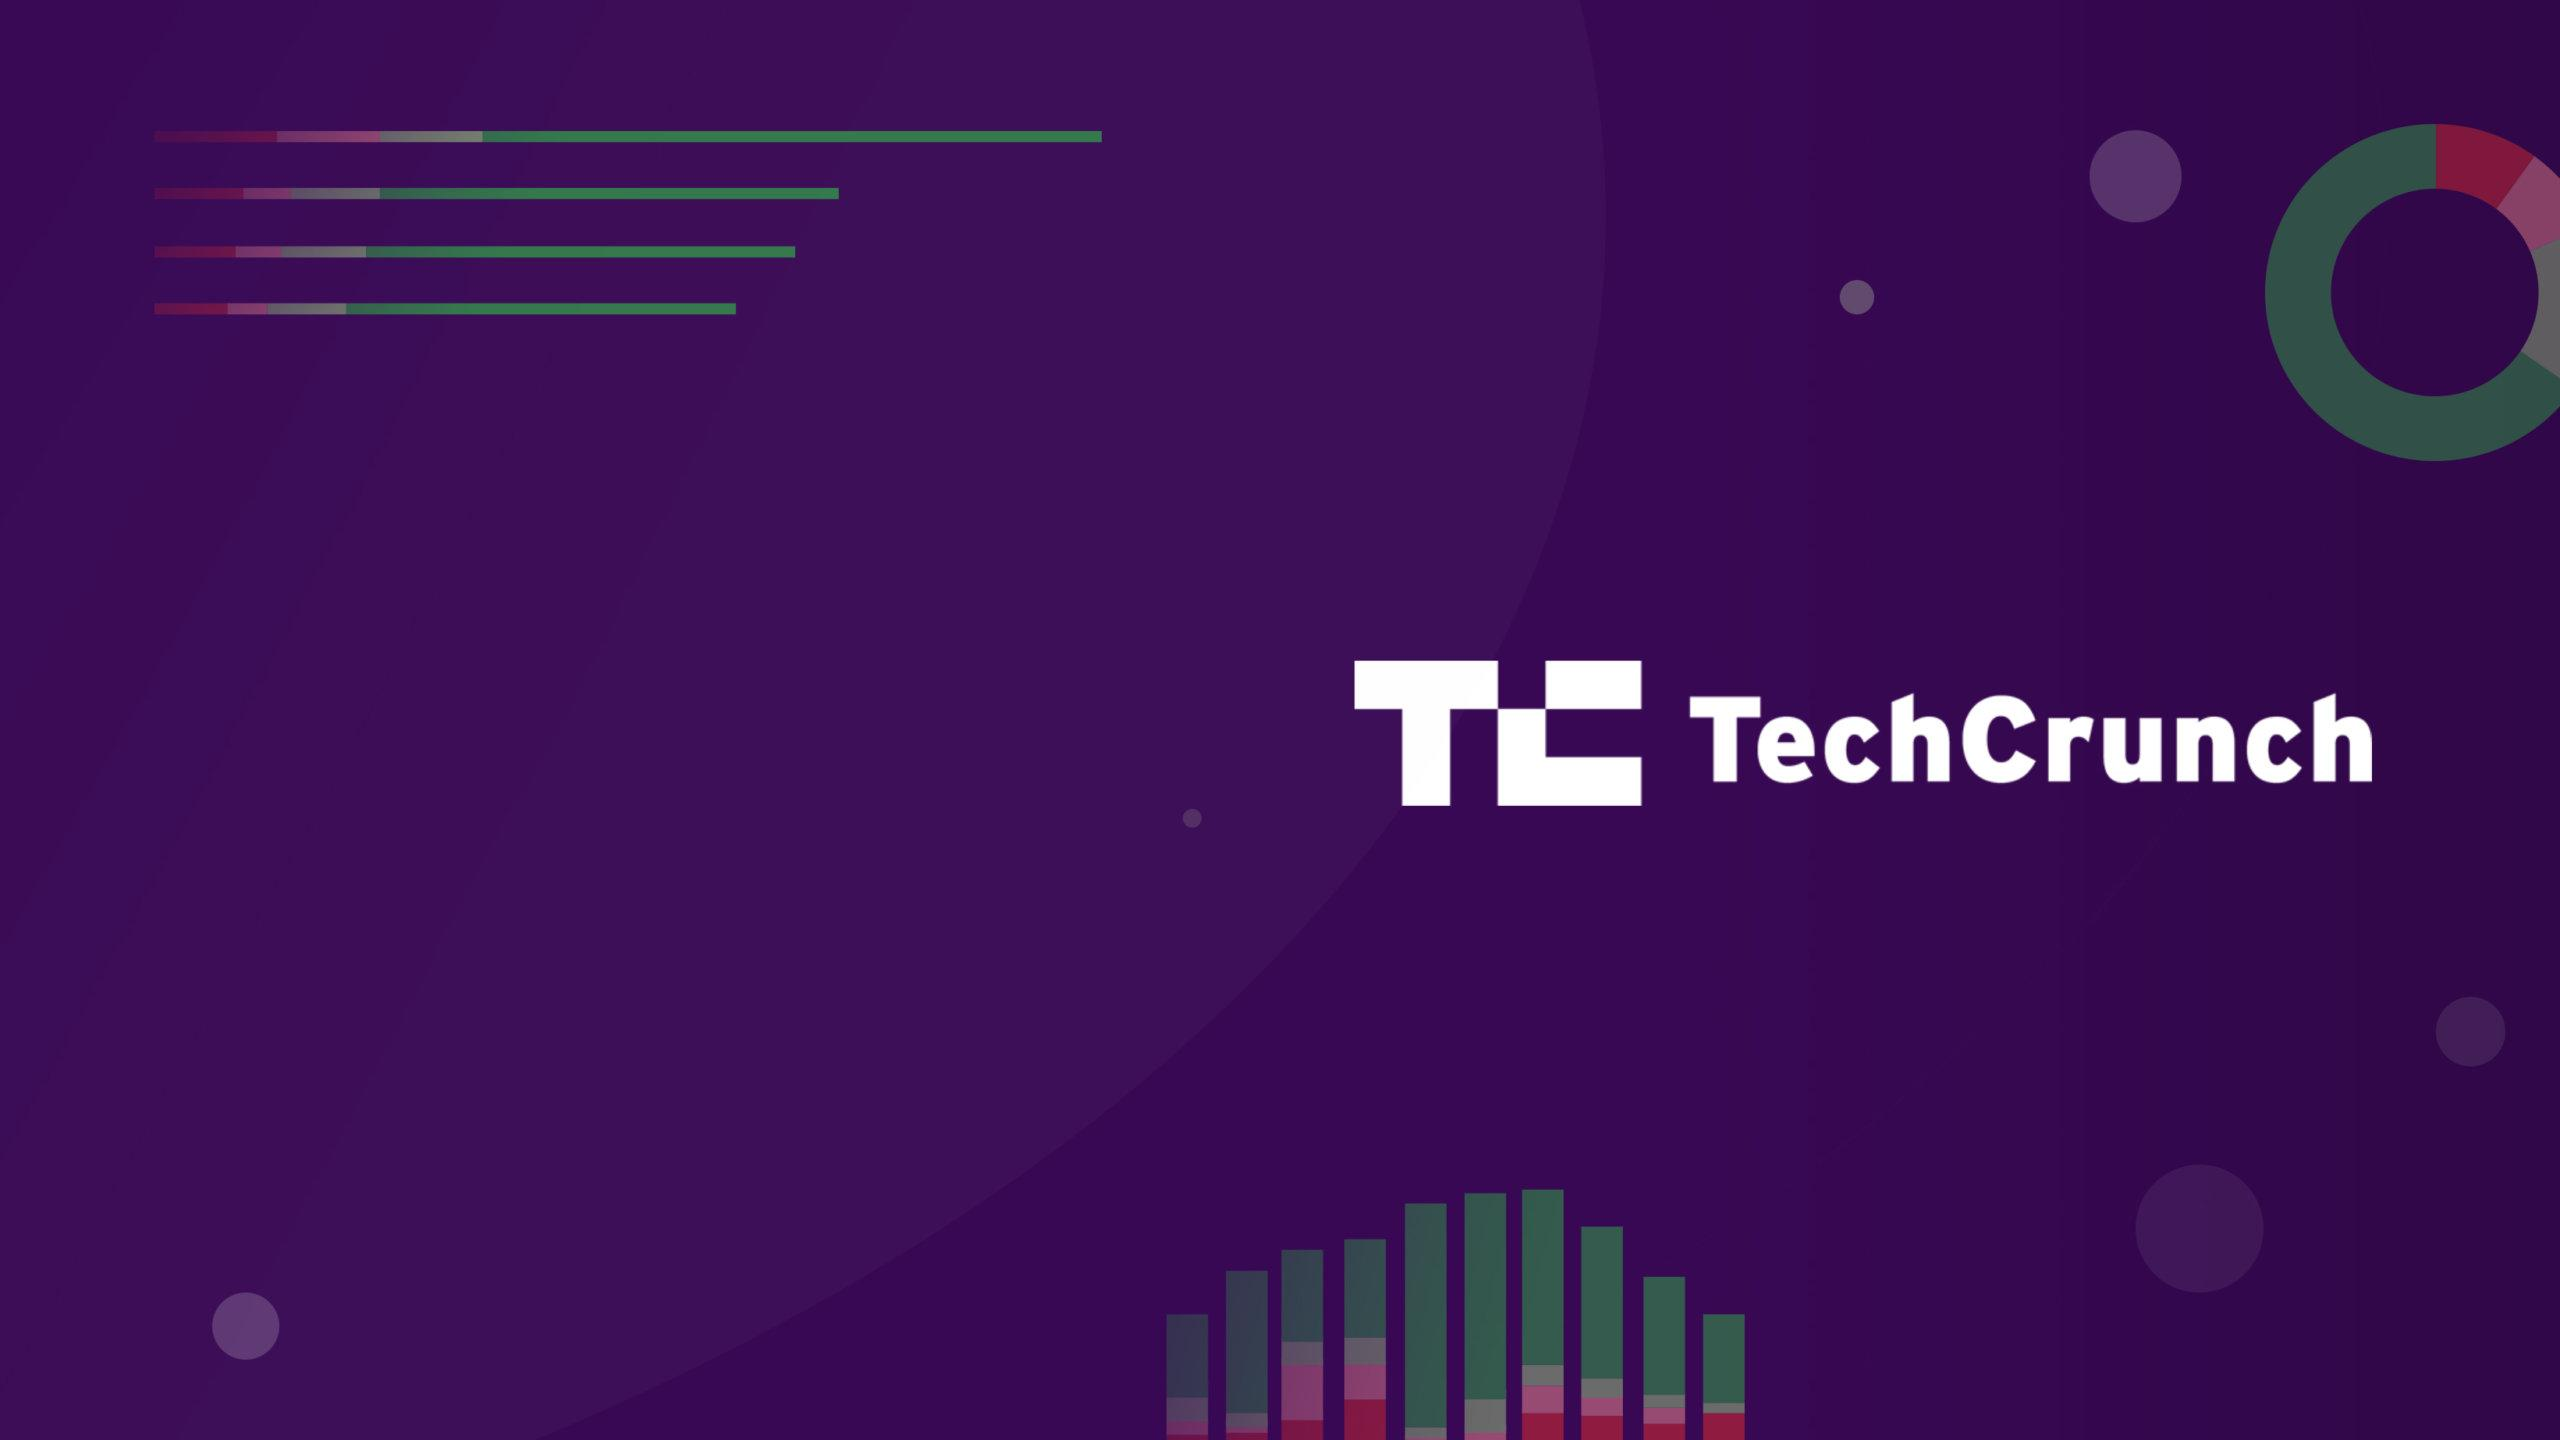 Our growth continues! Read our investment news on TechCrunch